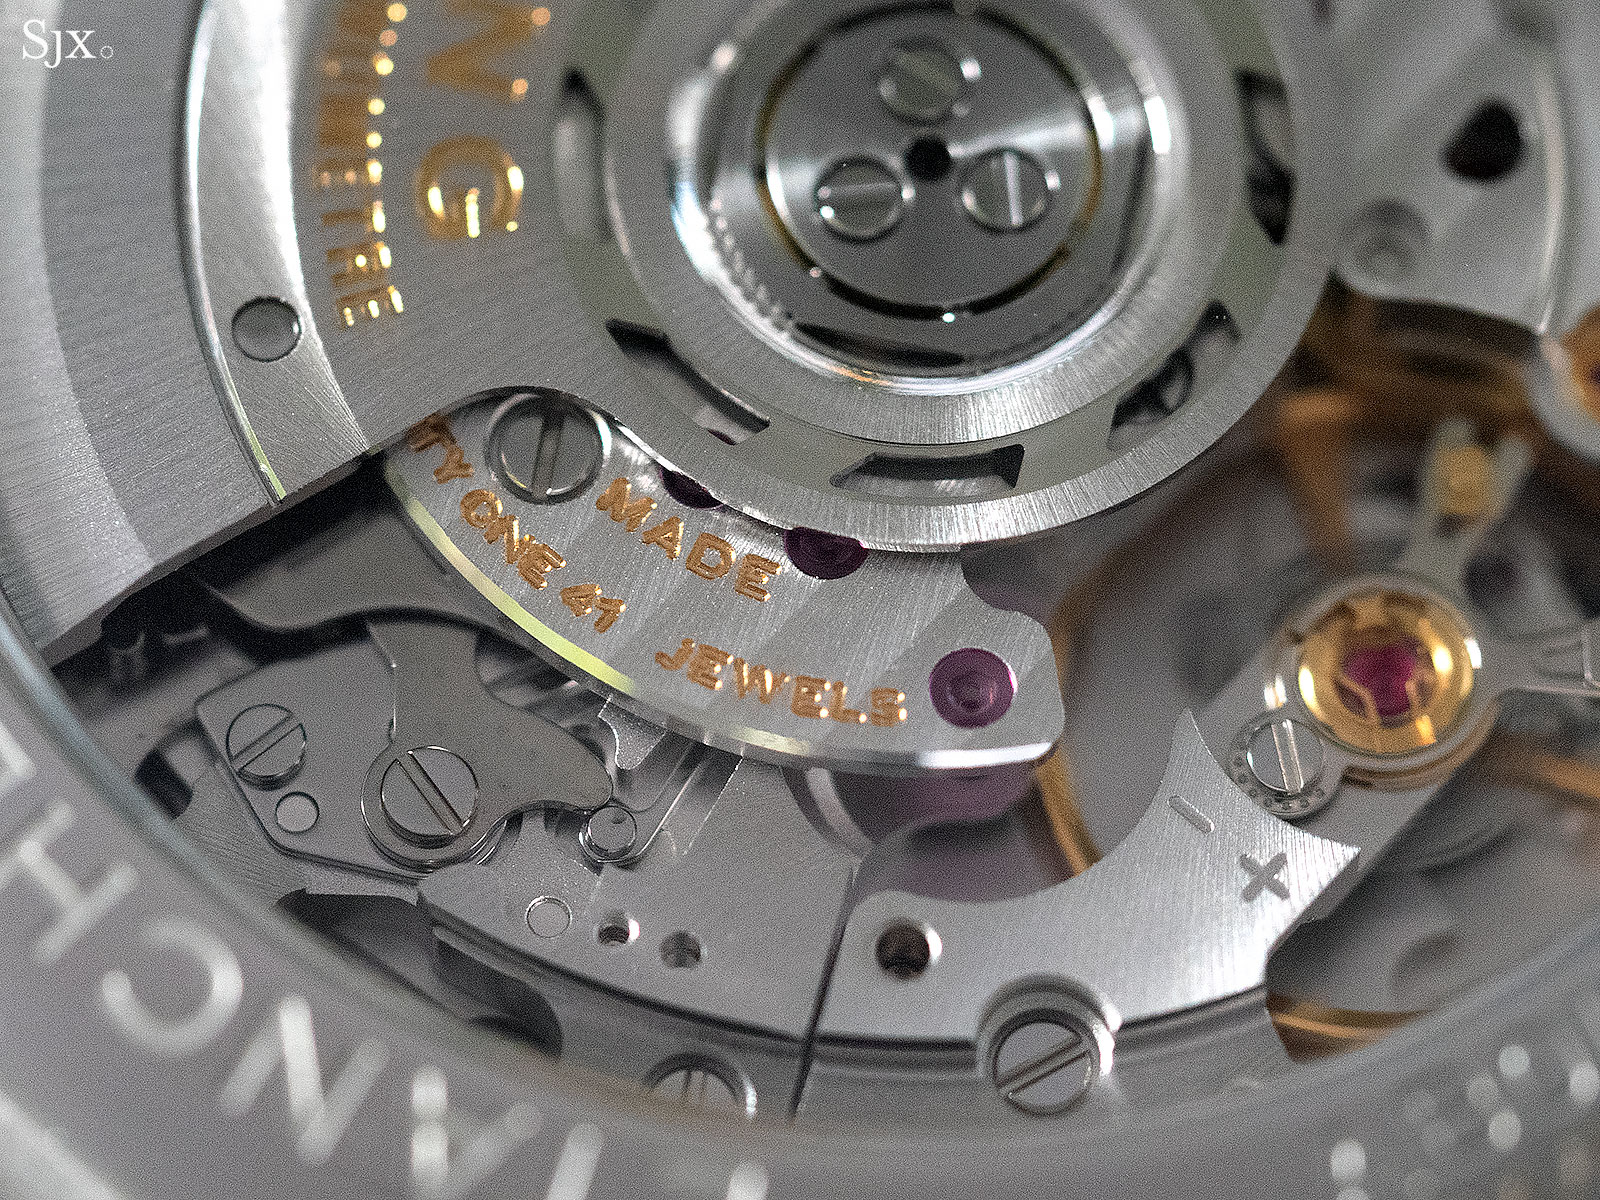 Breitling Premier B01 movement 2